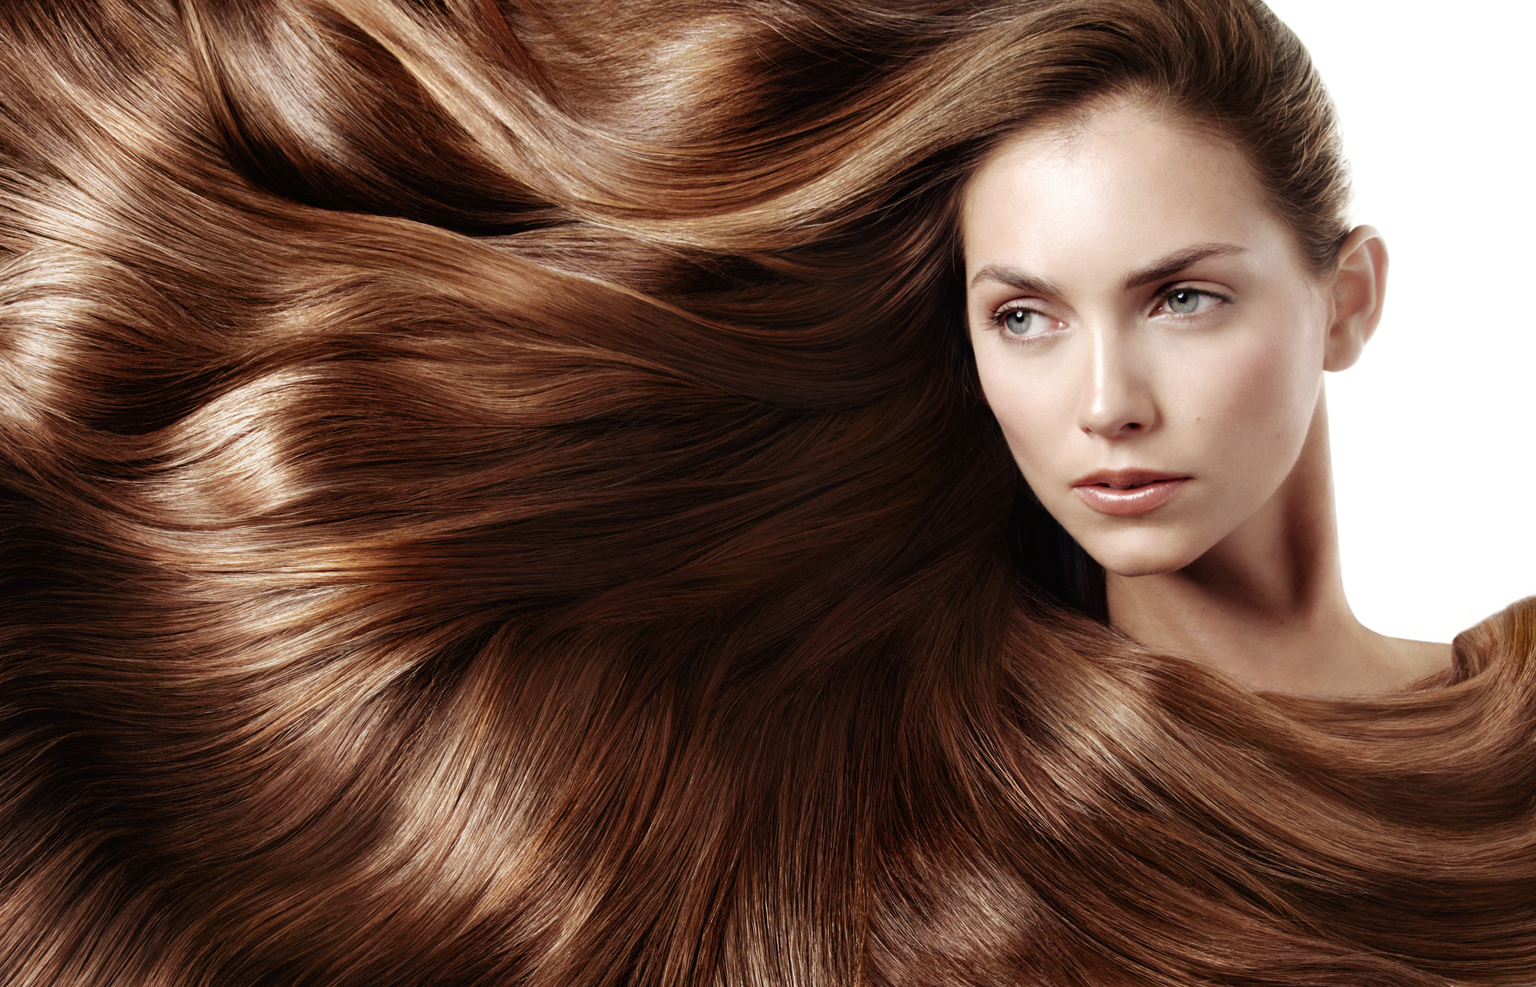 http://theromantic.com/wp-content/uploads/2015/07/beautiful-hair-romantic-care-package-gift-ideas-lock-of-hair-perfume.jpg